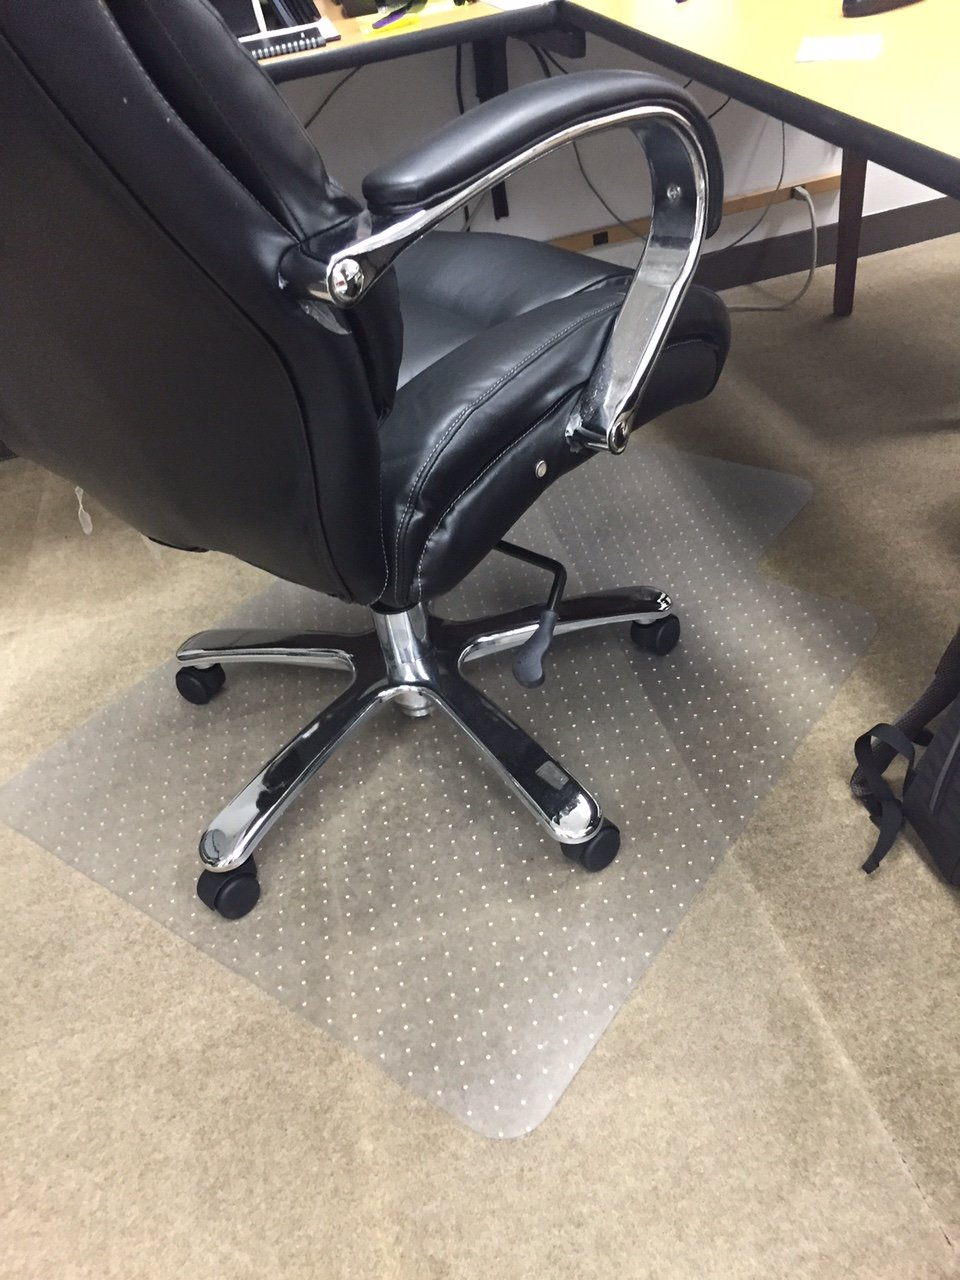 Desk Chair Mat - 3 Feet X 4 Feet (with Grippers) by Resilia